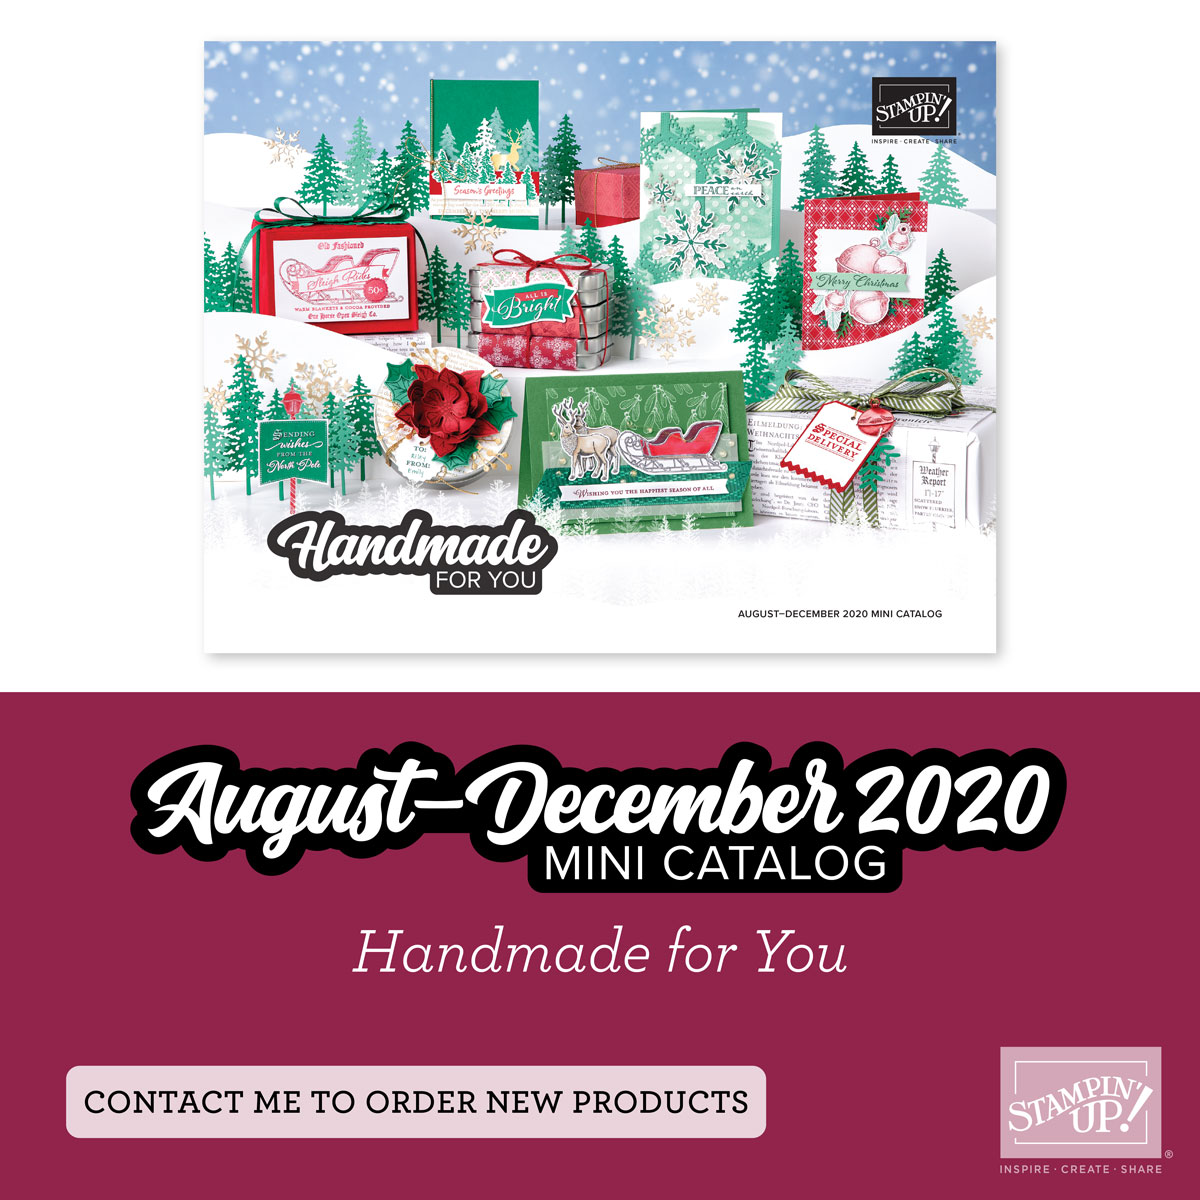 Aug - Dec Mini Catalog